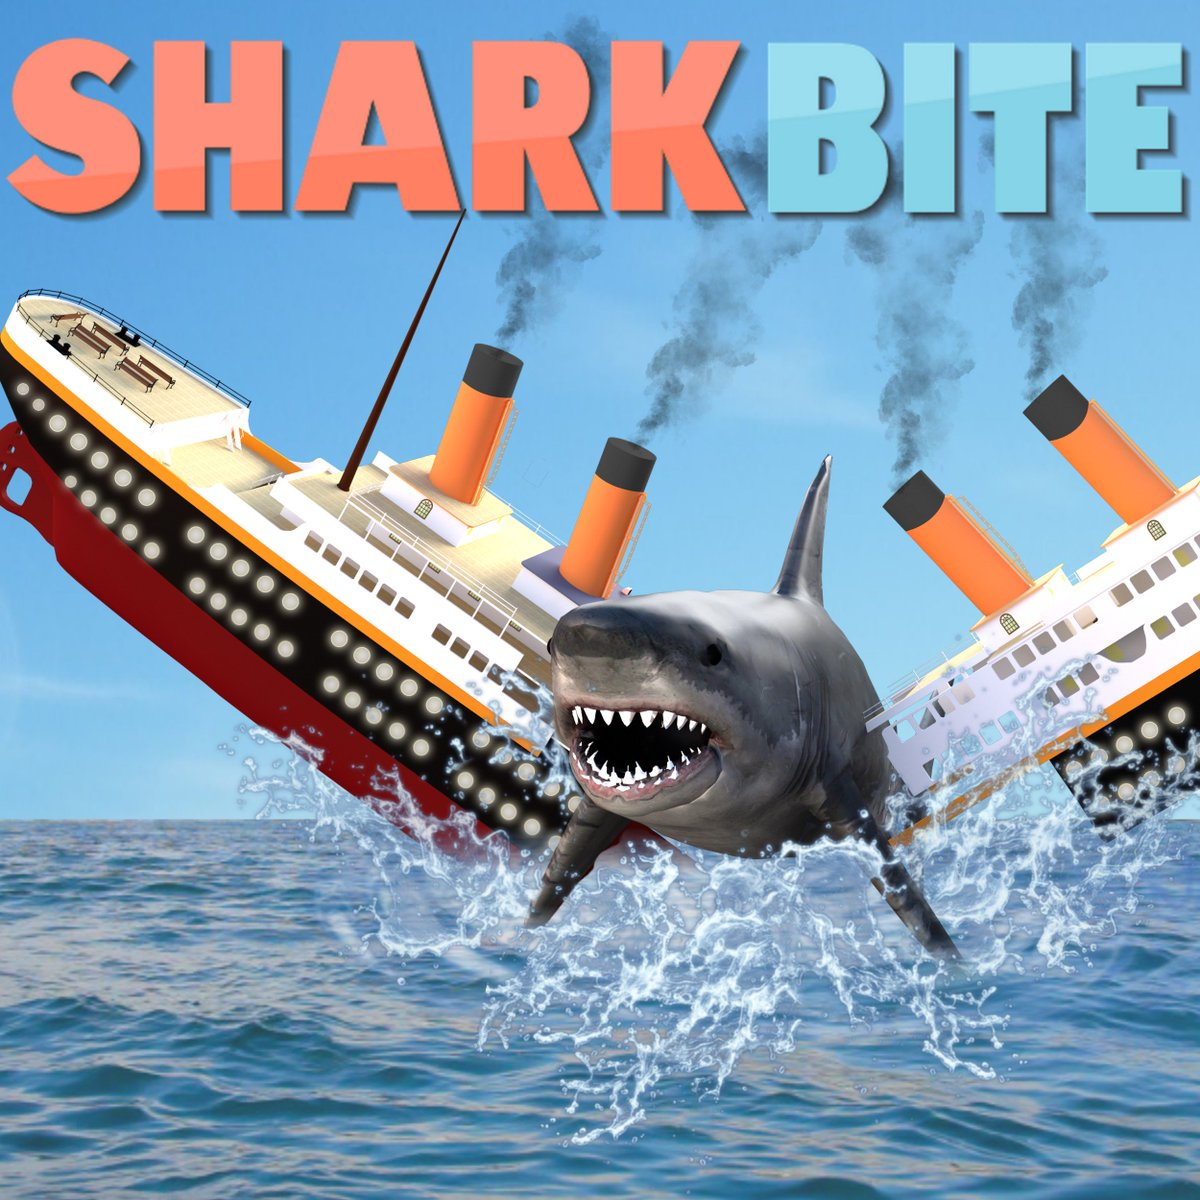 Simon On Twitter The Sharkbite Titanic Update Is Now Live In Servers Use Code Titanic For 50 Shark Teeth This Is Our Craziest Update Icon Yet Thanks Siros Art For Help With The Icon